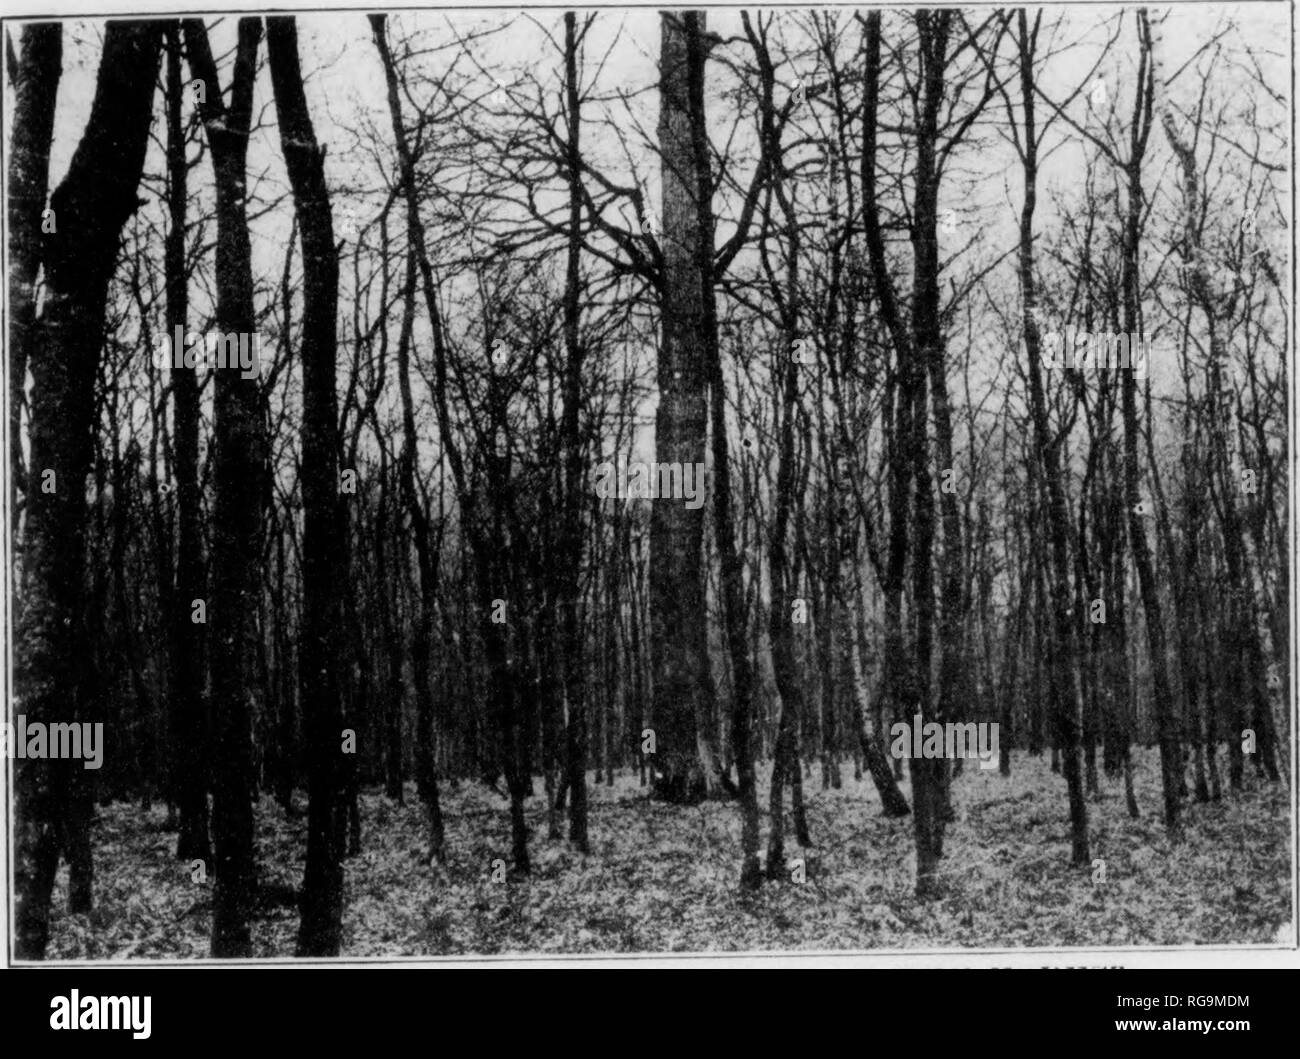 . Bulletin (Pennsylvania Department of Forestry), no. 11. Forests and forestry. Fig. 16. NATURAL REGENERATION OF THE FOREST. Norway Spruce after seeding cutting. Regeneration following regulated seed pro- duction . i m I. Fig. 17. NATURAL REGENERATION OF THE FORESl Large Oak seed tree with its olTspring.. Please note that these images are extracted from scanned page images that may have been digitally enhanced for readability - coloration and appearance of these illustrations may not perfectly resemble the original work.. Pennsylvania. Dept. of Forestry. Harrisburg, Pa. : The Department : WM.  - Stock Image